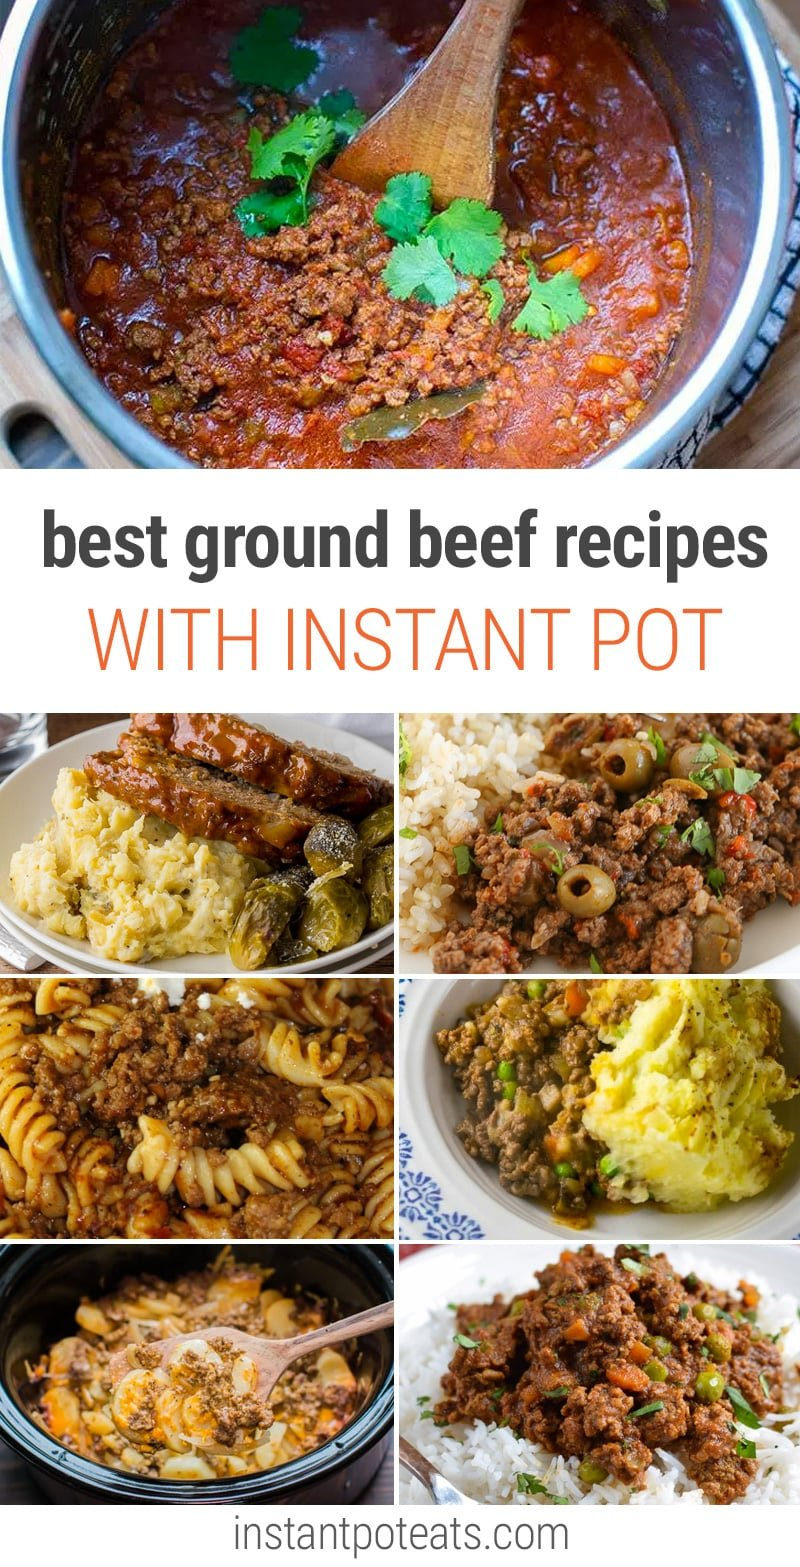 The BEST Instant Pot ground beef recipes you will love: cottage pie, meatballs, chili, ground beef meatloaf, and more.